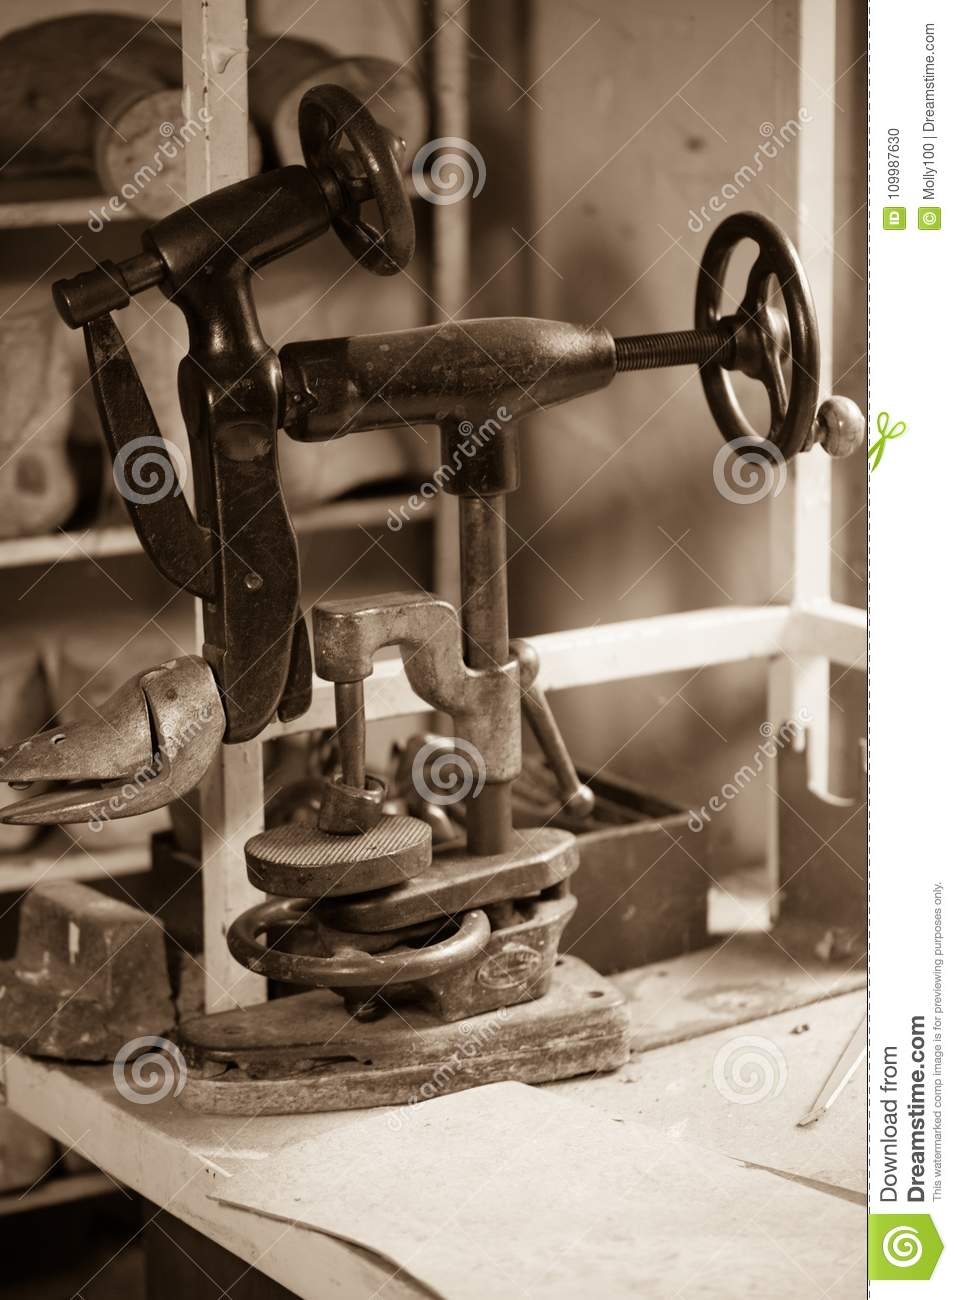 Old Adhesive Container In A Shoemaking Shop Stock Photo - Image of